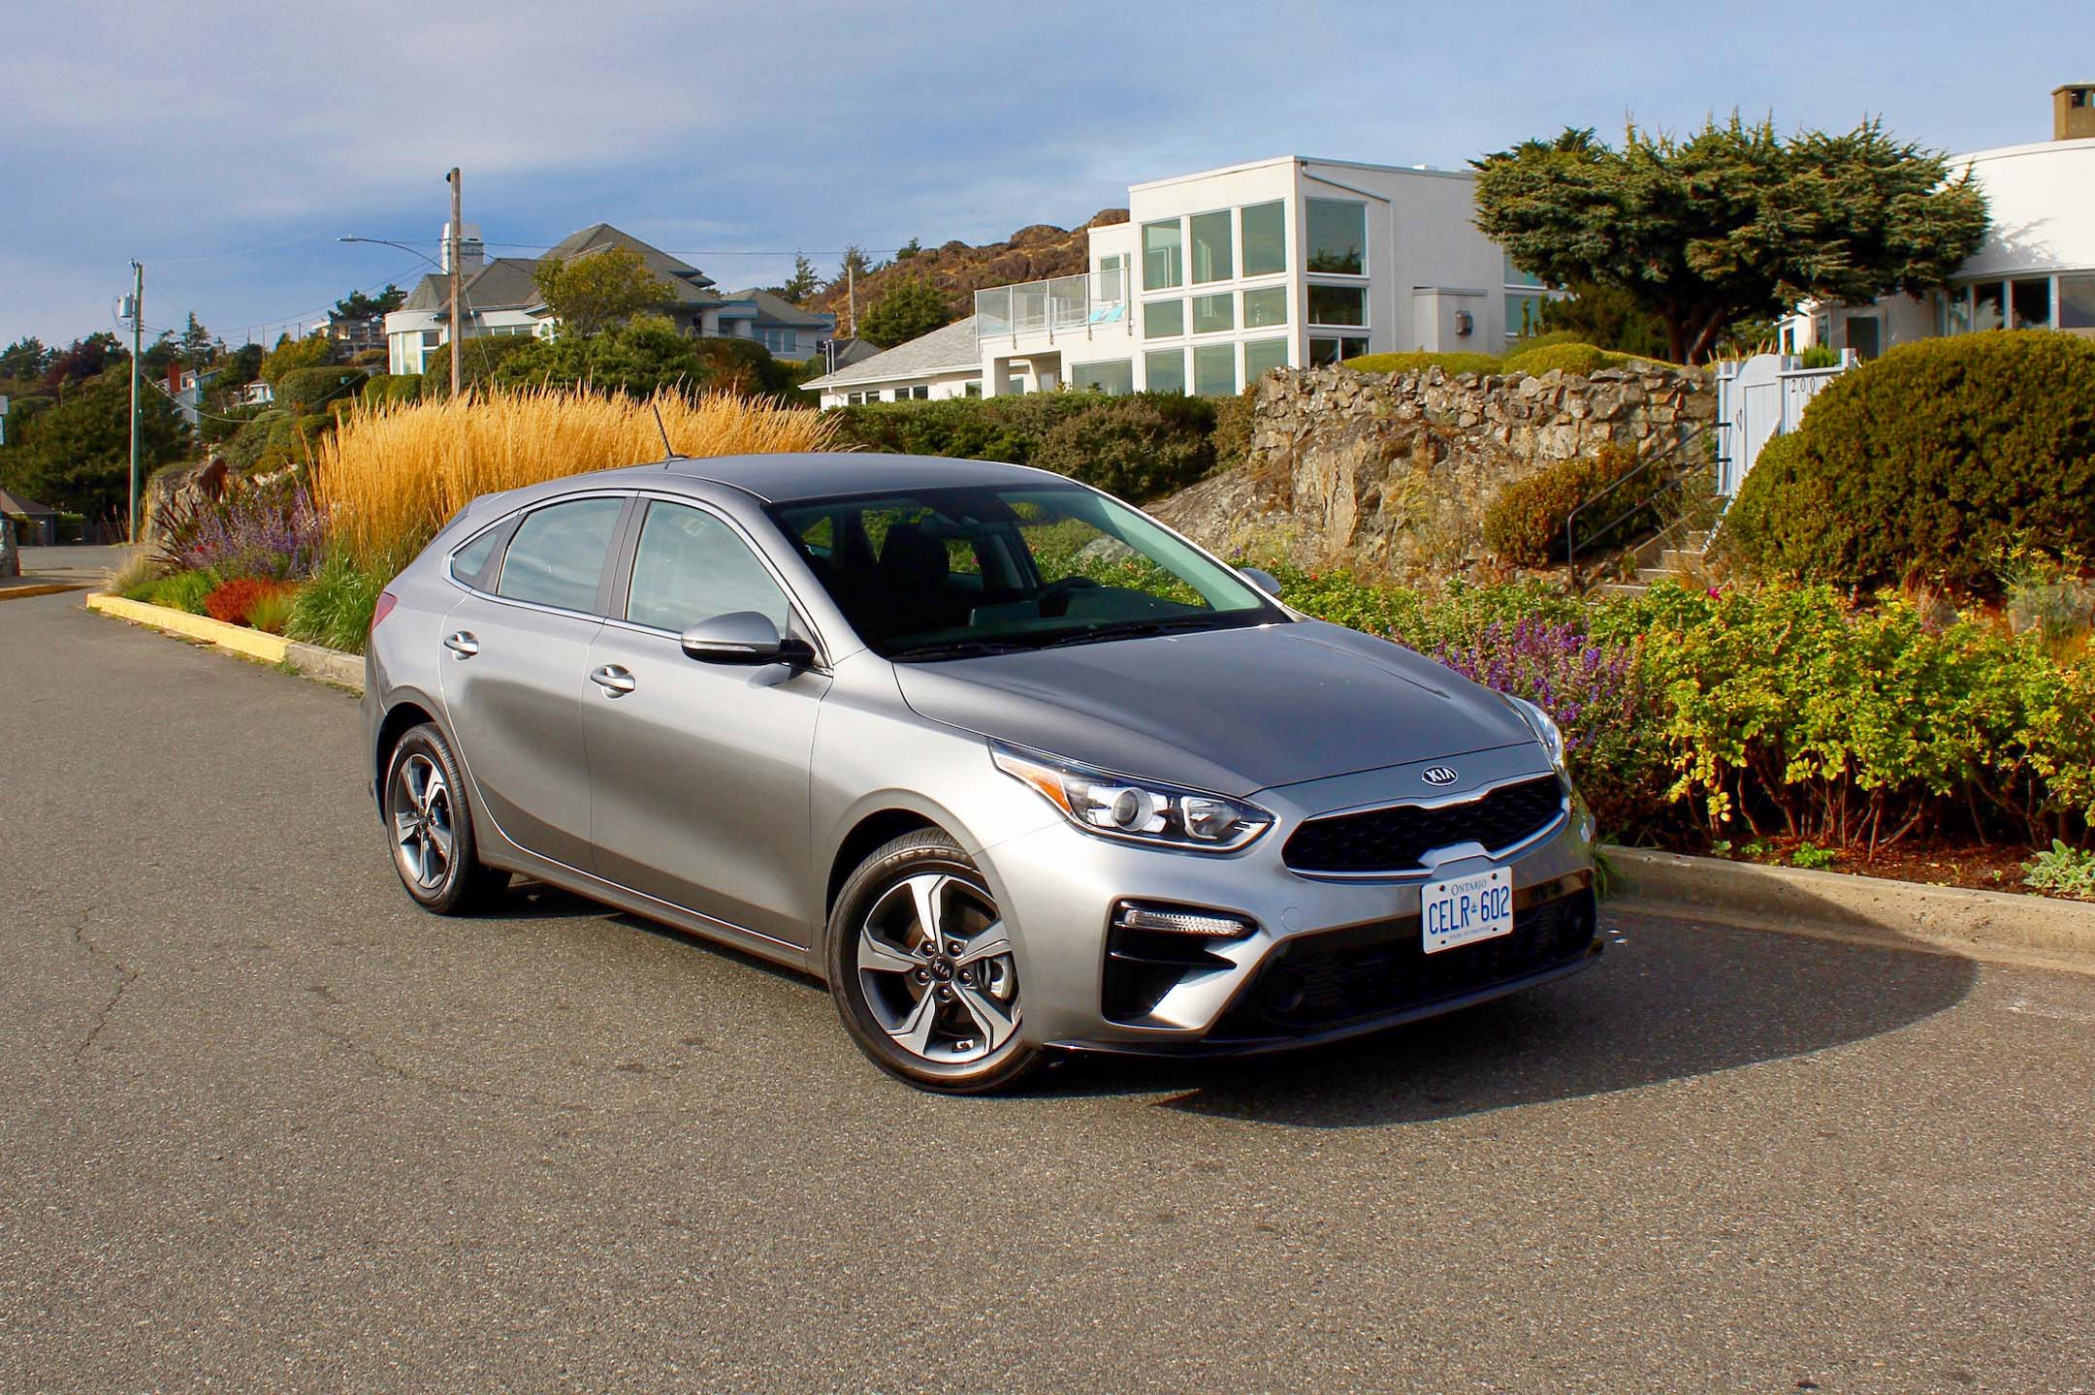 11 Kia Forte11 First Drive Review | Expert Reviews | autotrader